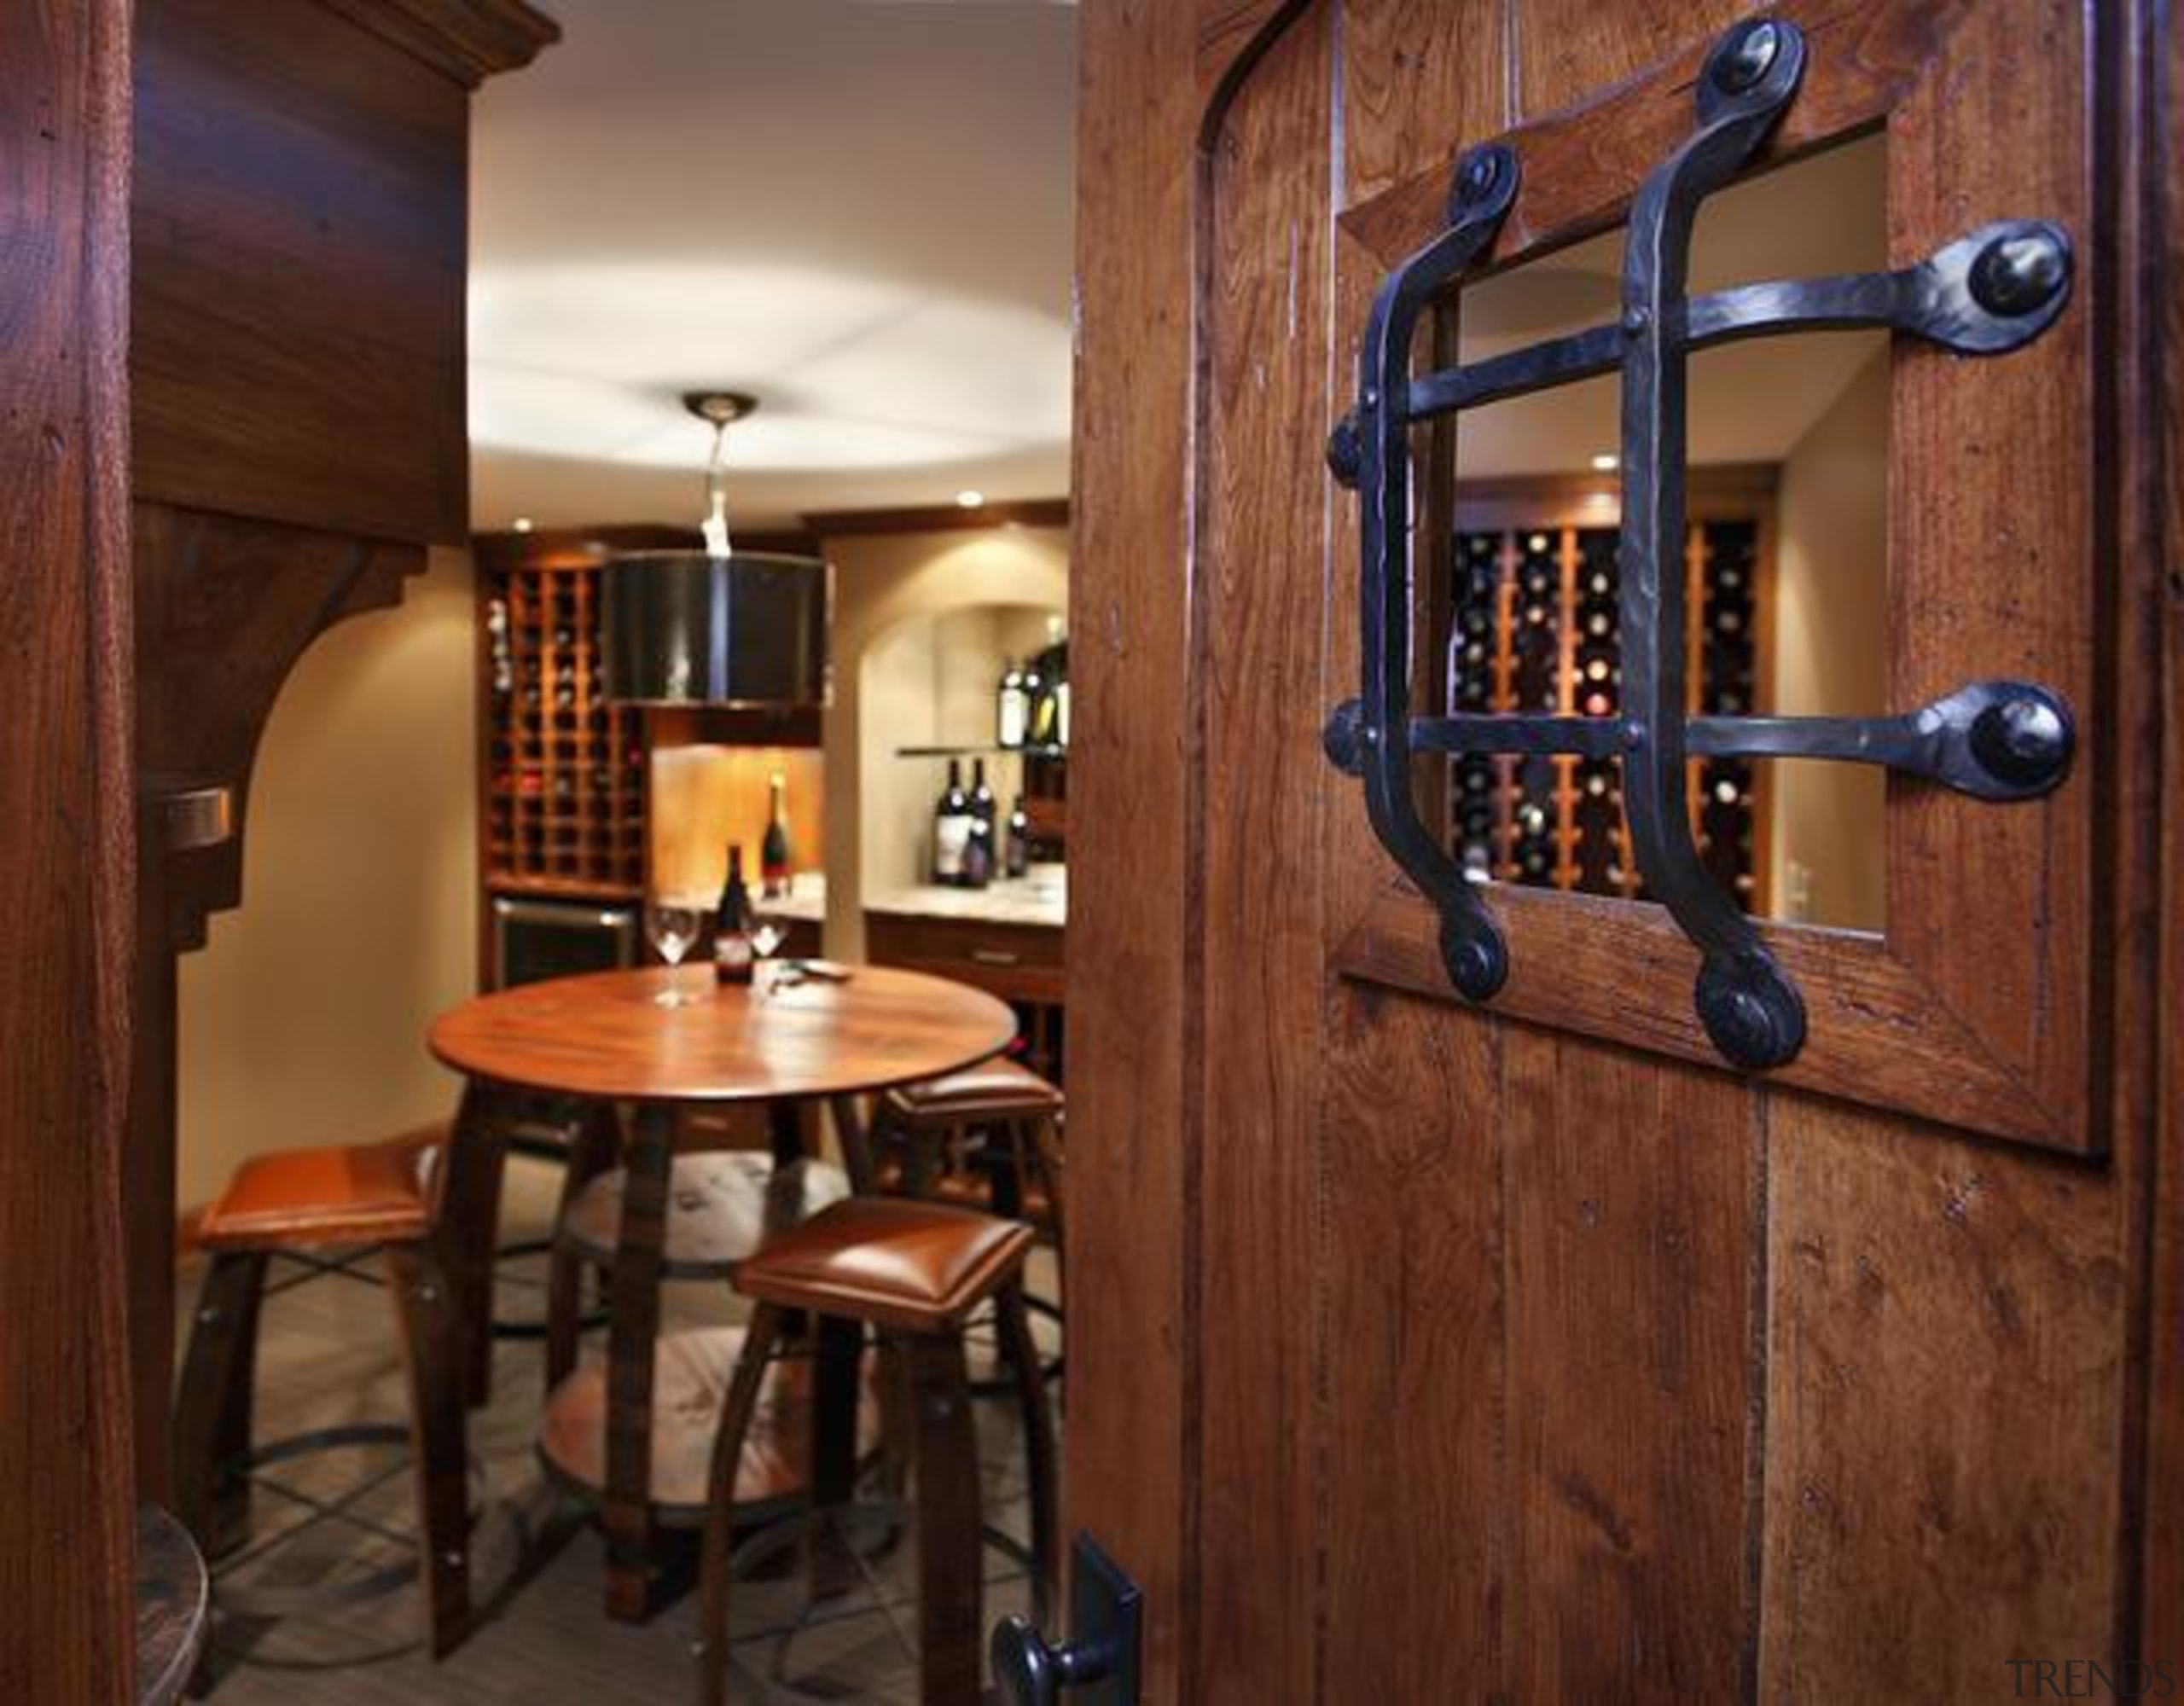 Because of its expansive and wide-open layout, a cabinetry, countertop, interior design, wine cellar, brown, red